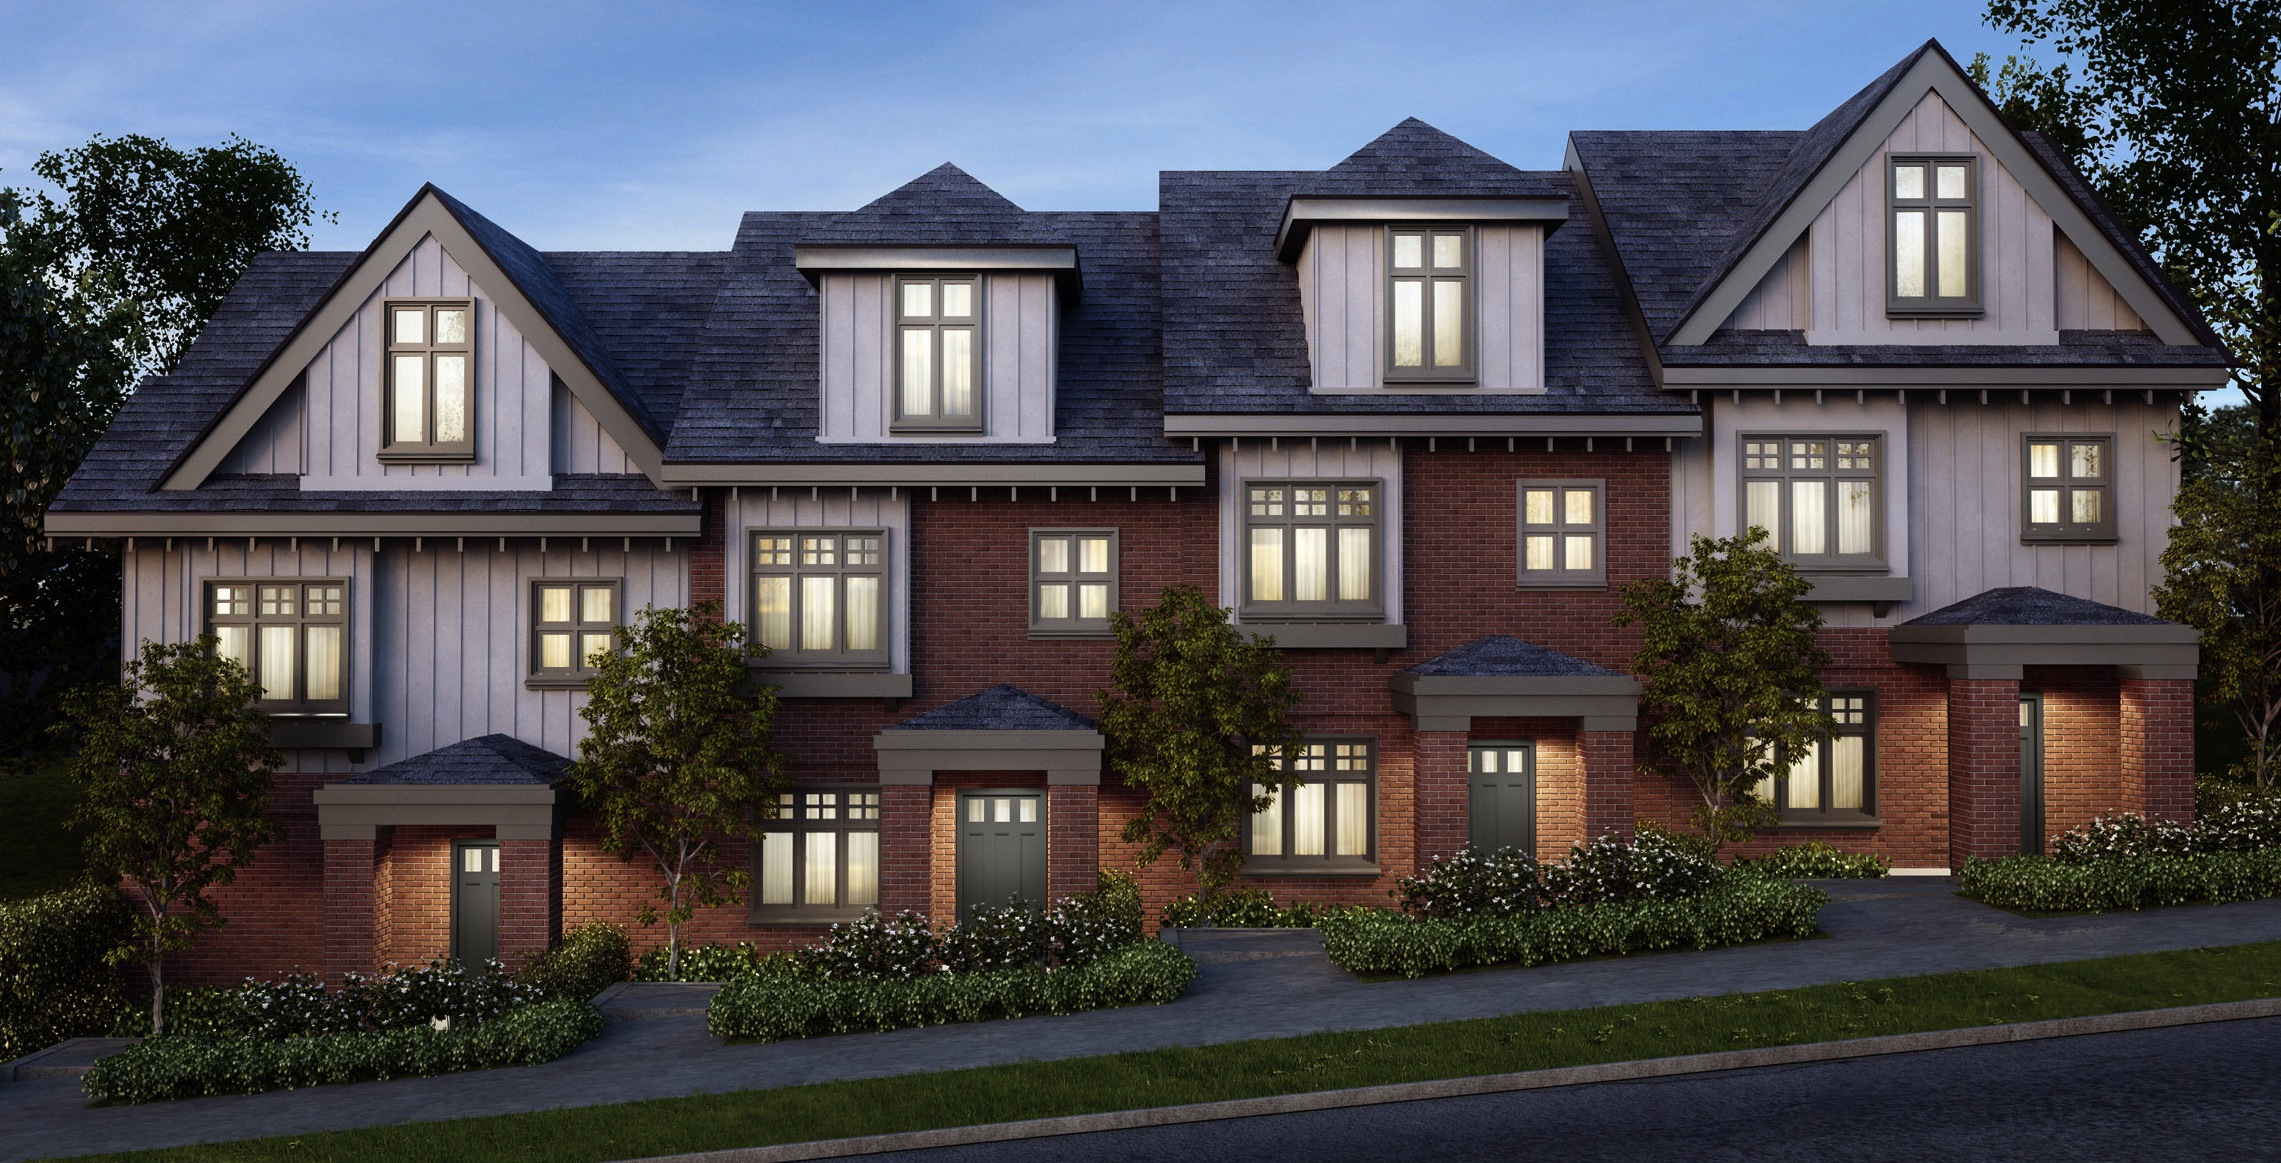 Cambridge Mews – Six Stately South Kerrisdale Brick Townhomes